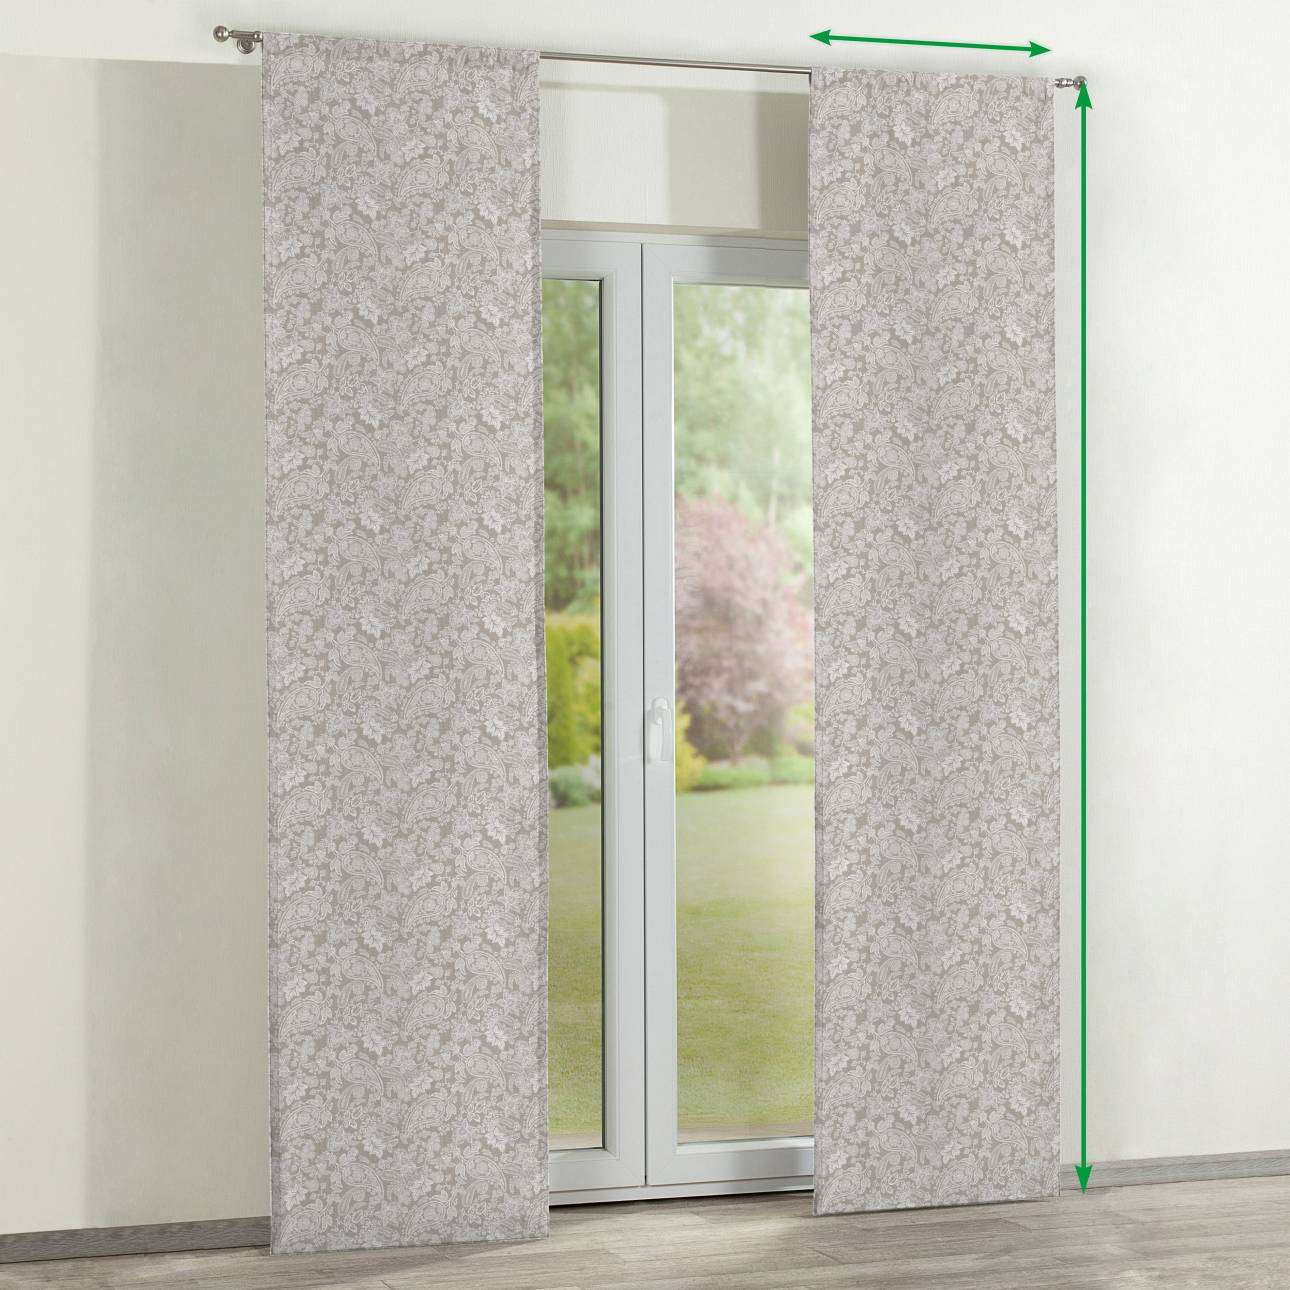 Slot panel curtains – Set of 2 in collection Flowers, fabric: 311-08